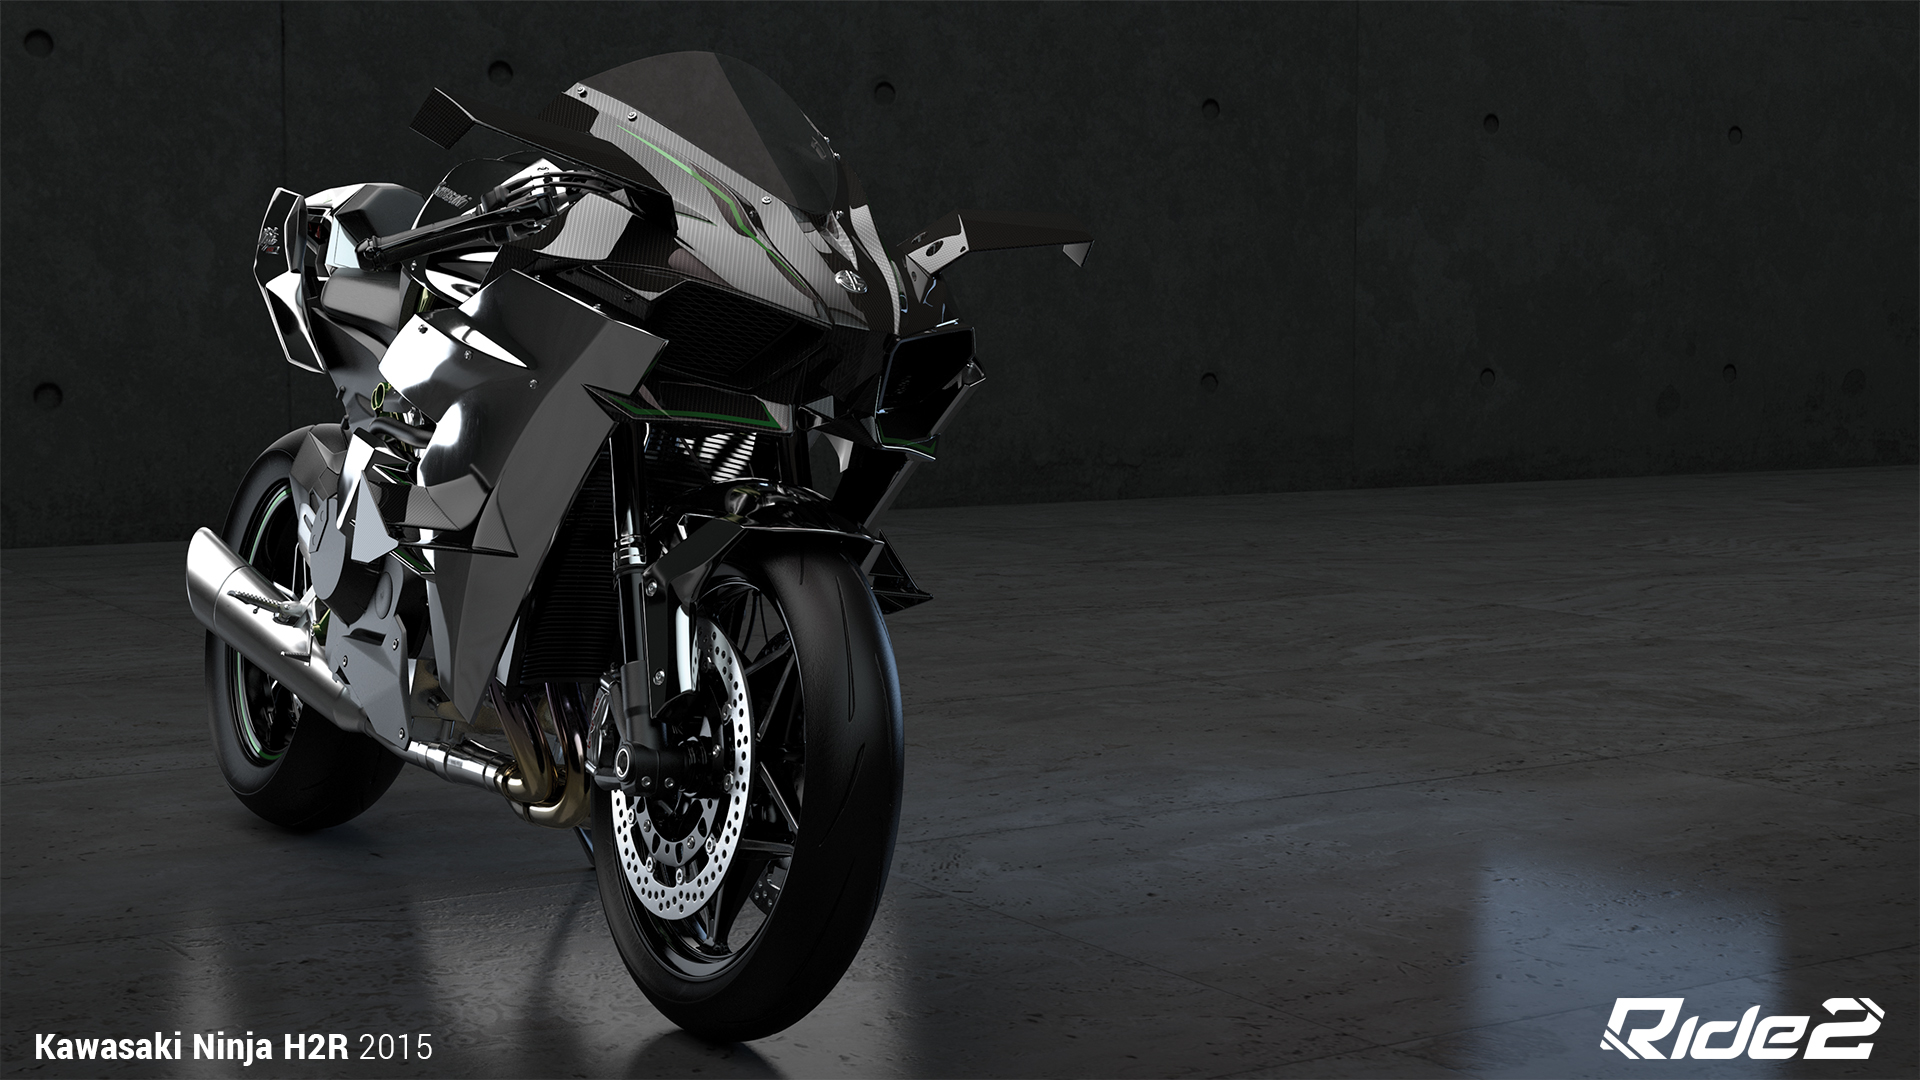 2015 Kawasaki Ninja H2r Hd Wallpaper Background Image 1920x1080 Id 727460 Wallpaper Abyss